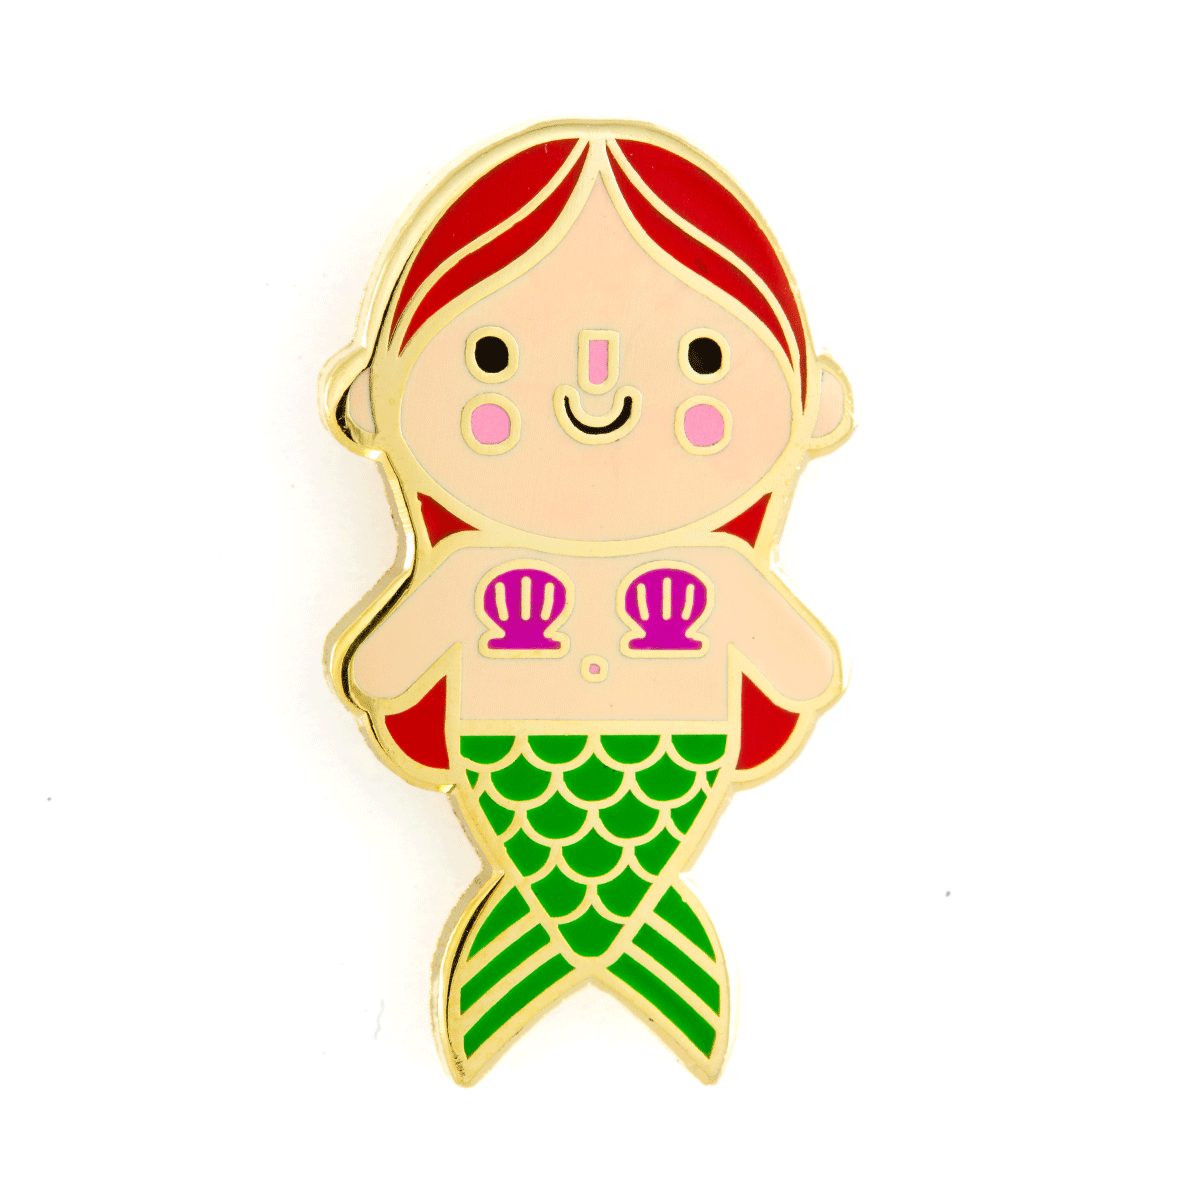 Mermaid Baby Pin - Red Hair